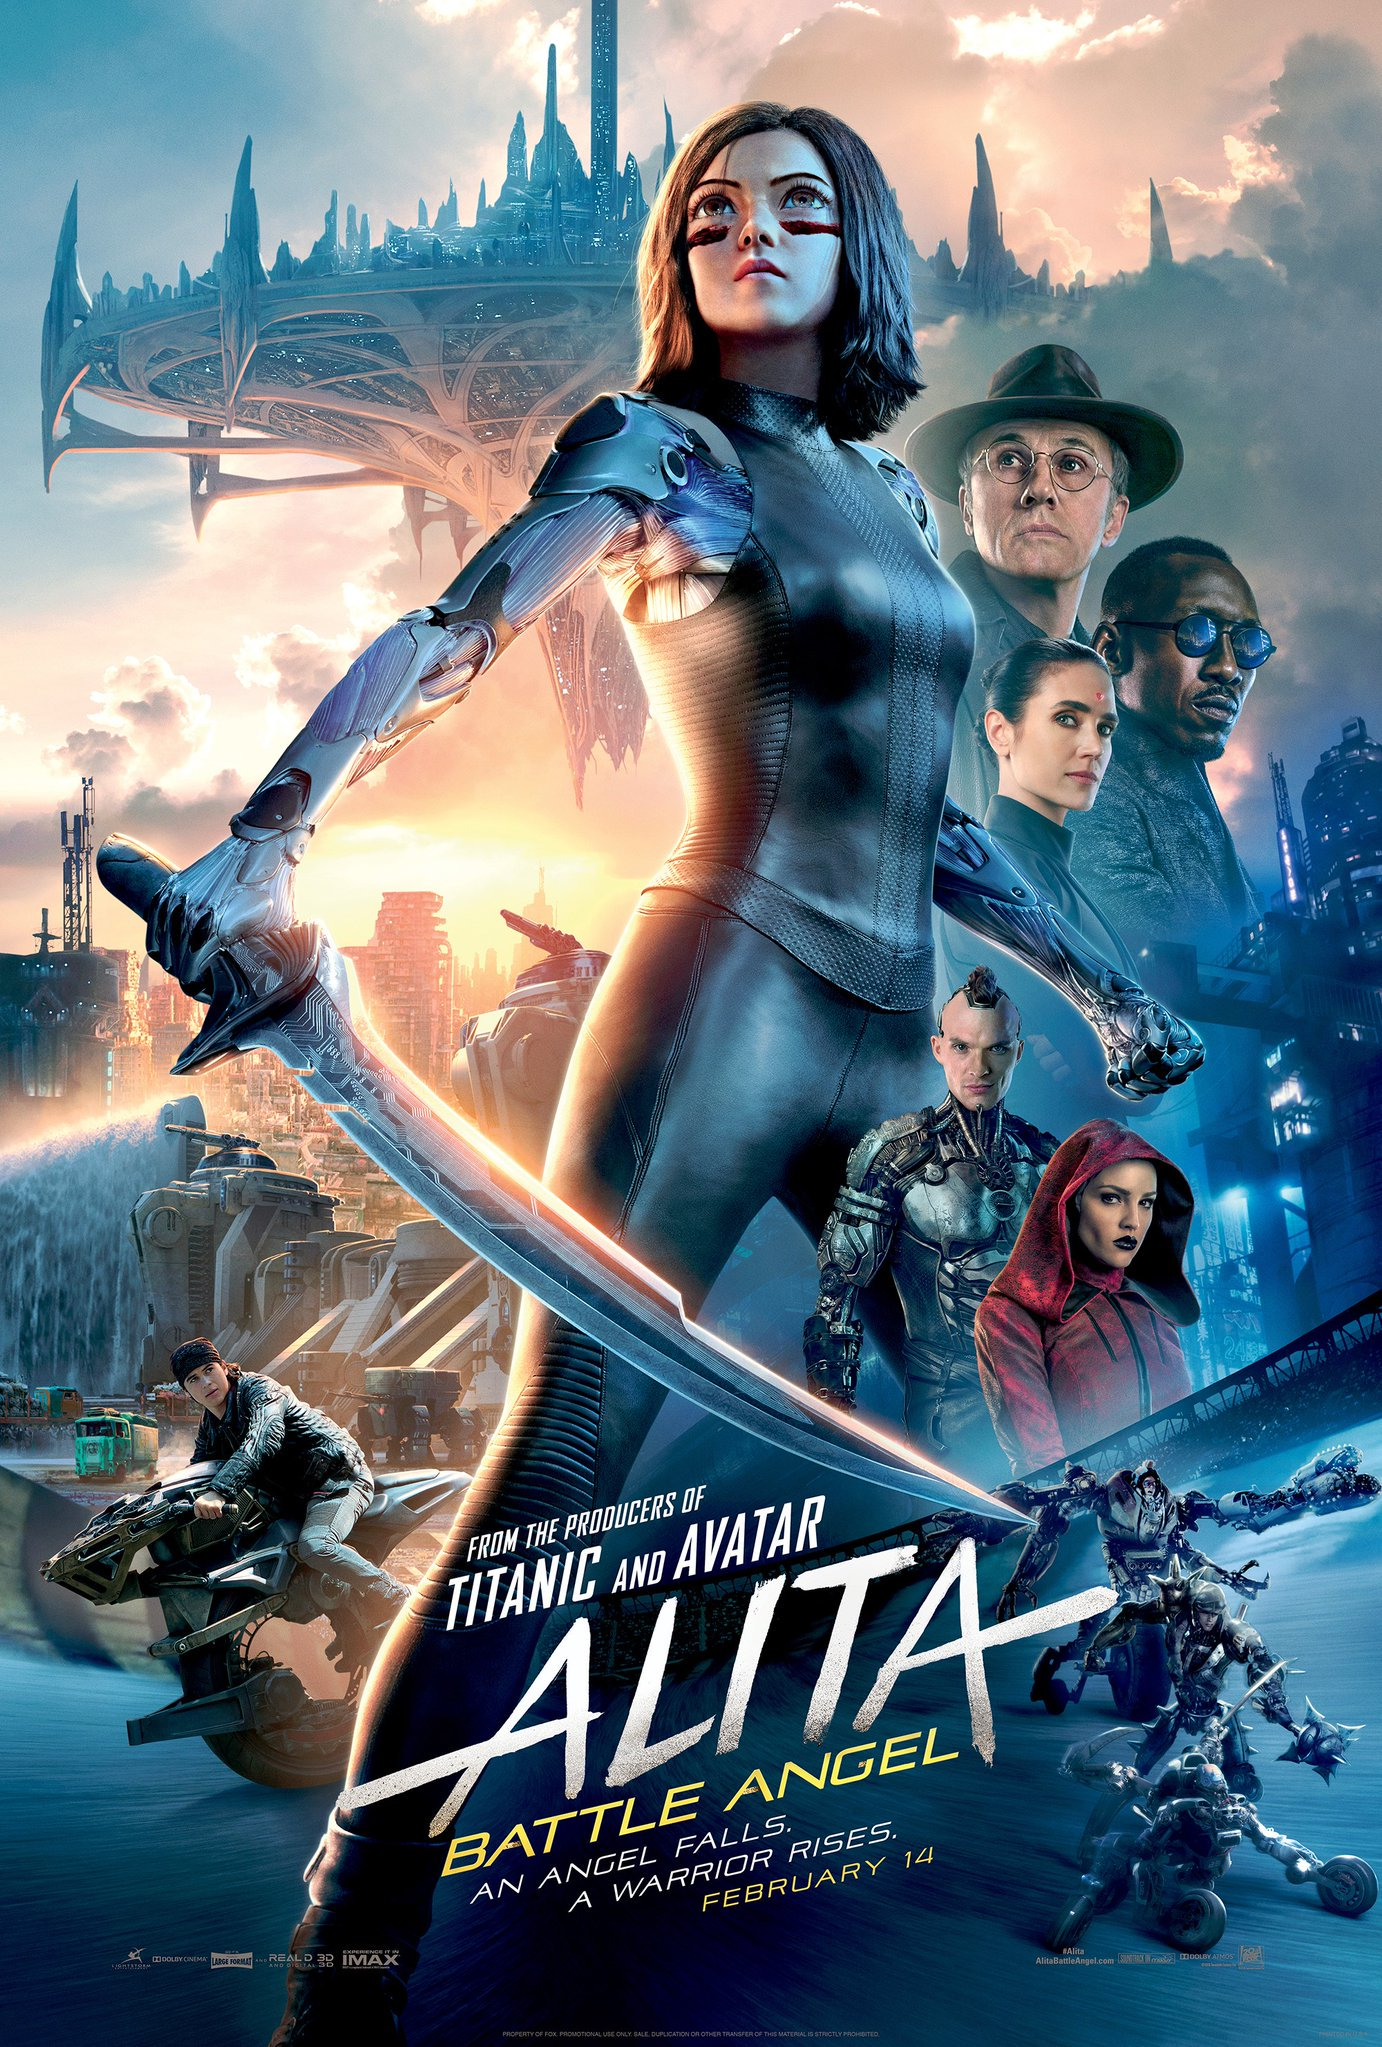 Alita Battle Angel Posters alita battle angel 42099892 1382 2047